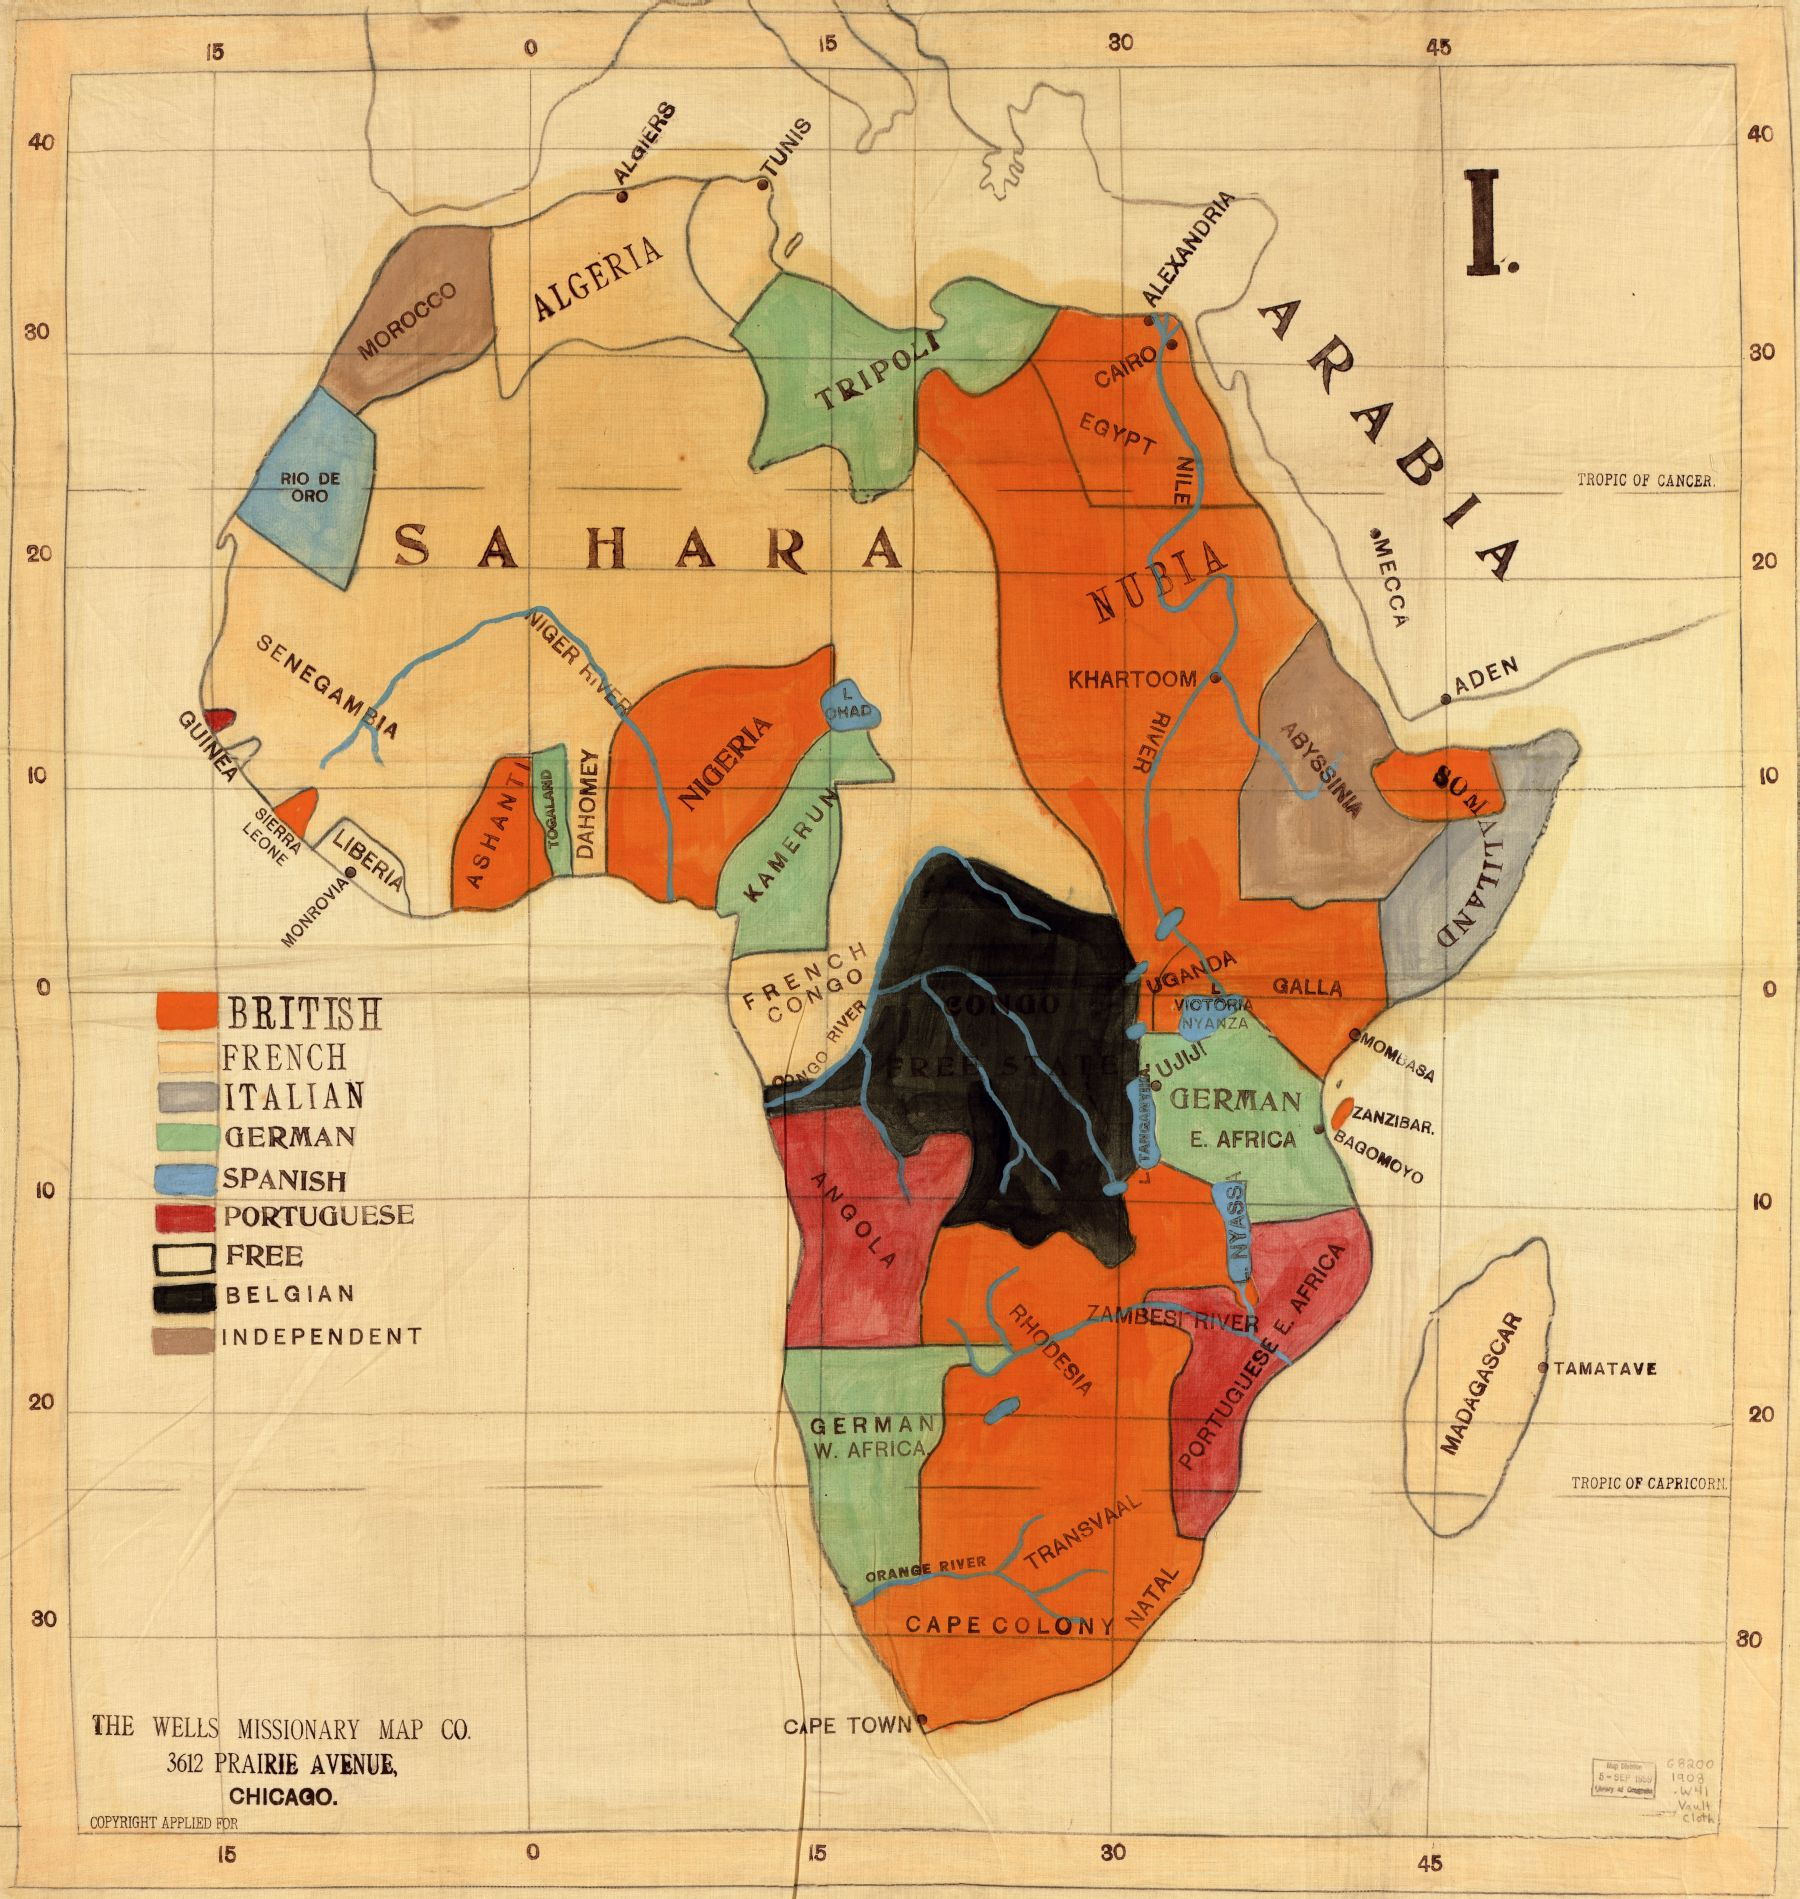 neocolonialism in africa Africa is no stranger to exploitation after decades of colonial rule under major western powers, the continent was left with a legacy of harsh, imperialist rule that set it back years in modernization as a result, it has become the focus of mountains of developmental assistance from countries.